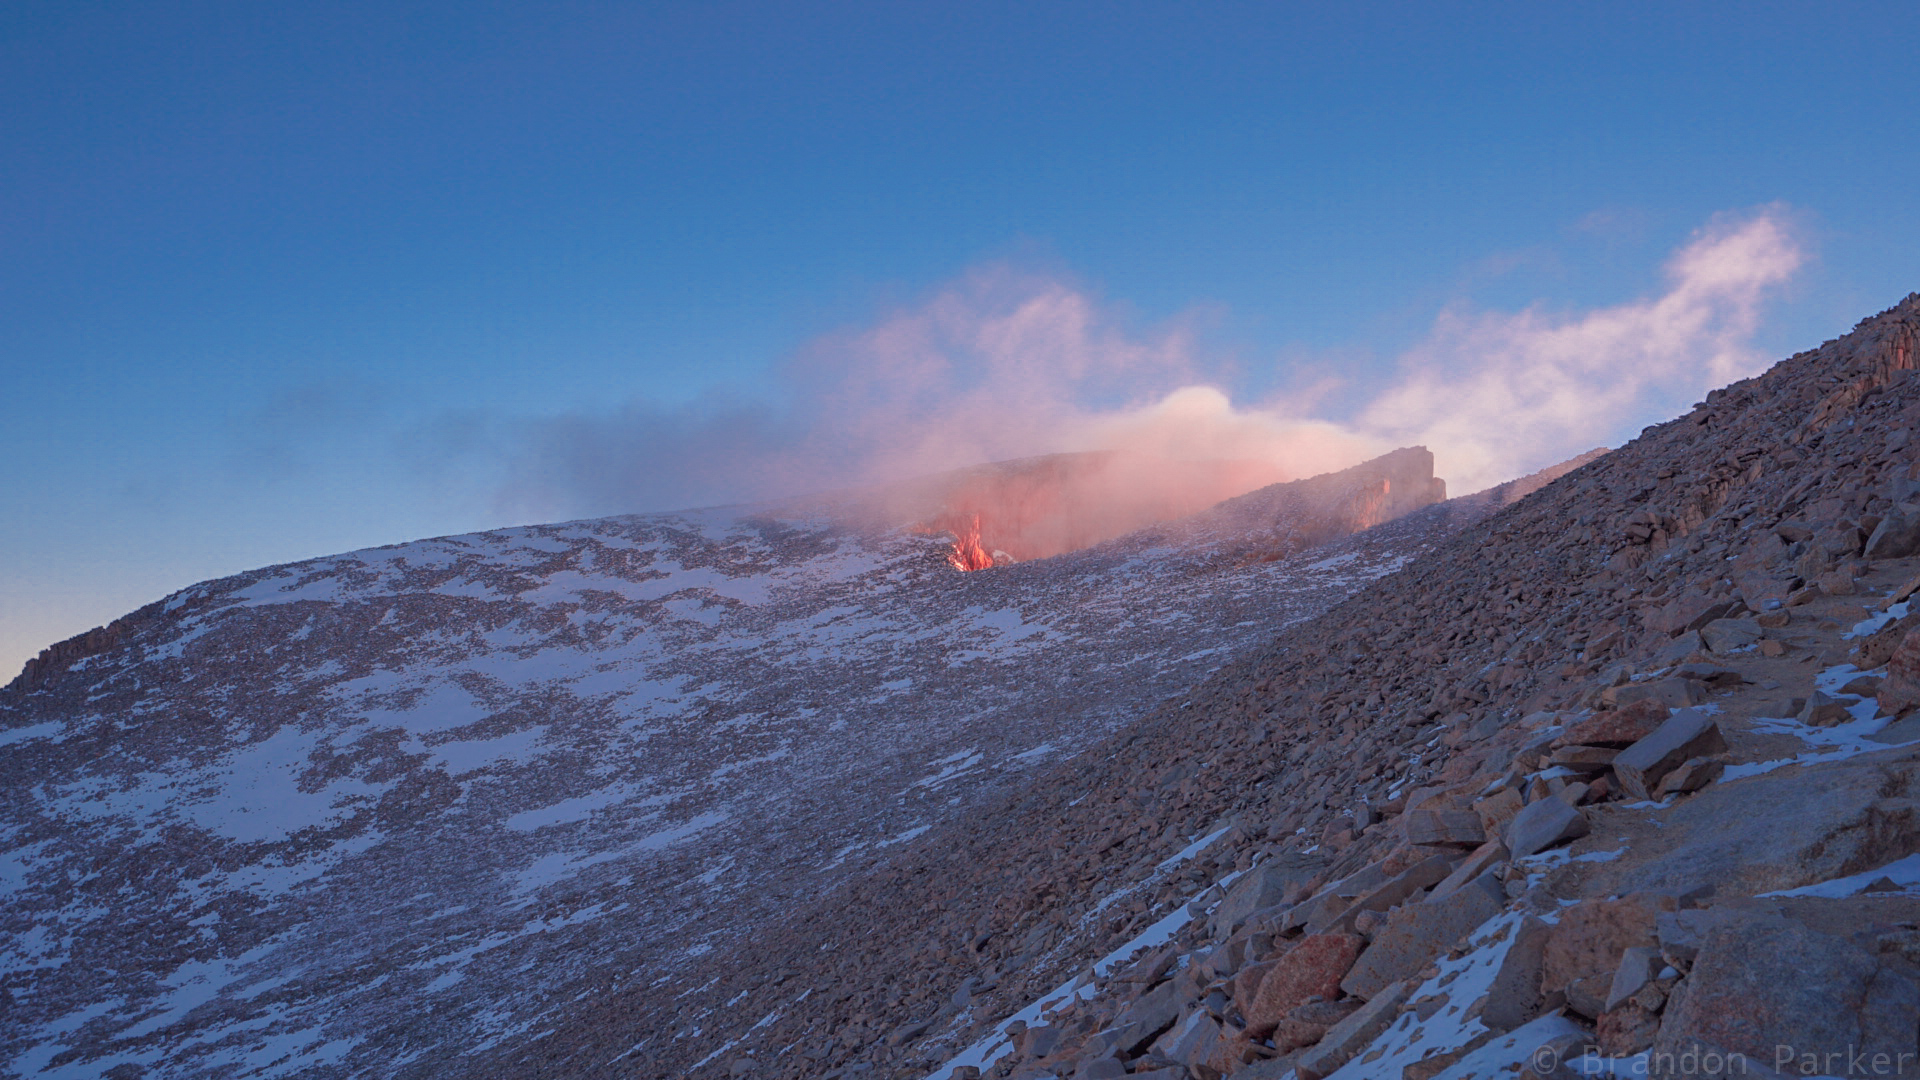 My Whitney summit on fire in the early morning sunrise